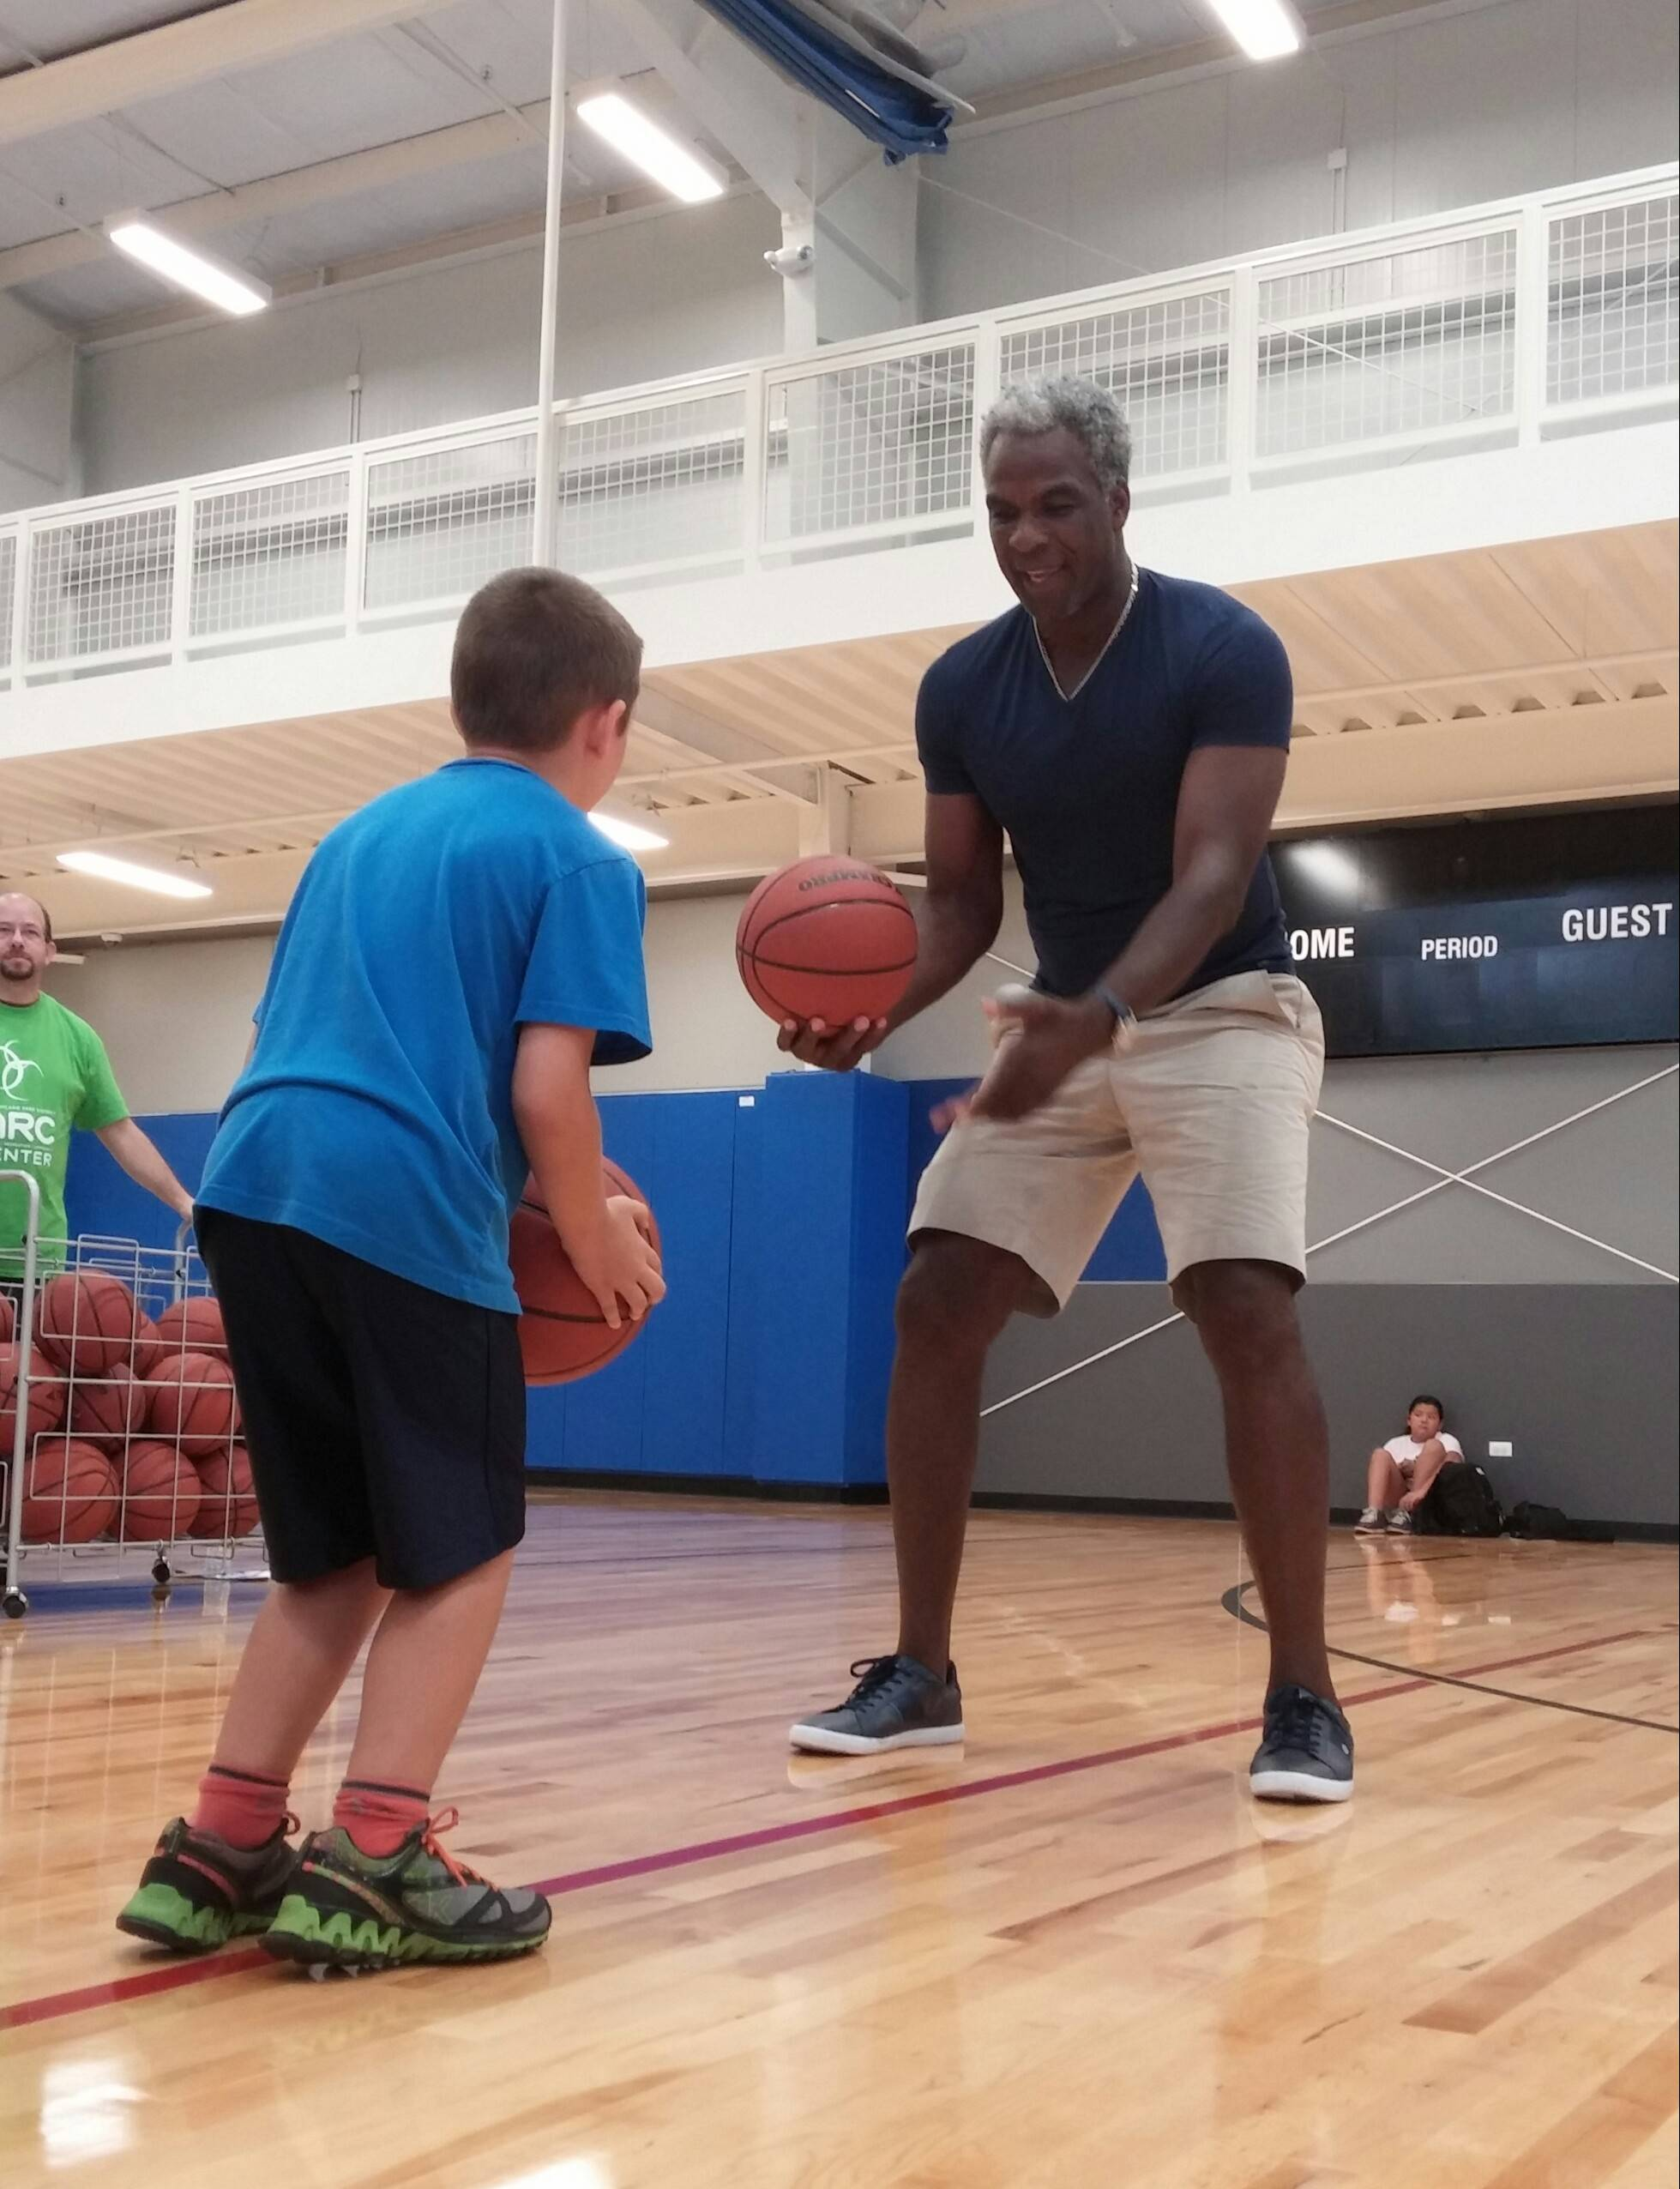 Former Chicago Bull Charles Oakley gives some dribbling tips during a clinic in the gym at West Chicago's new ARC Center grand opening Saturday. Construction on the city's first recreation center began in August 2013.